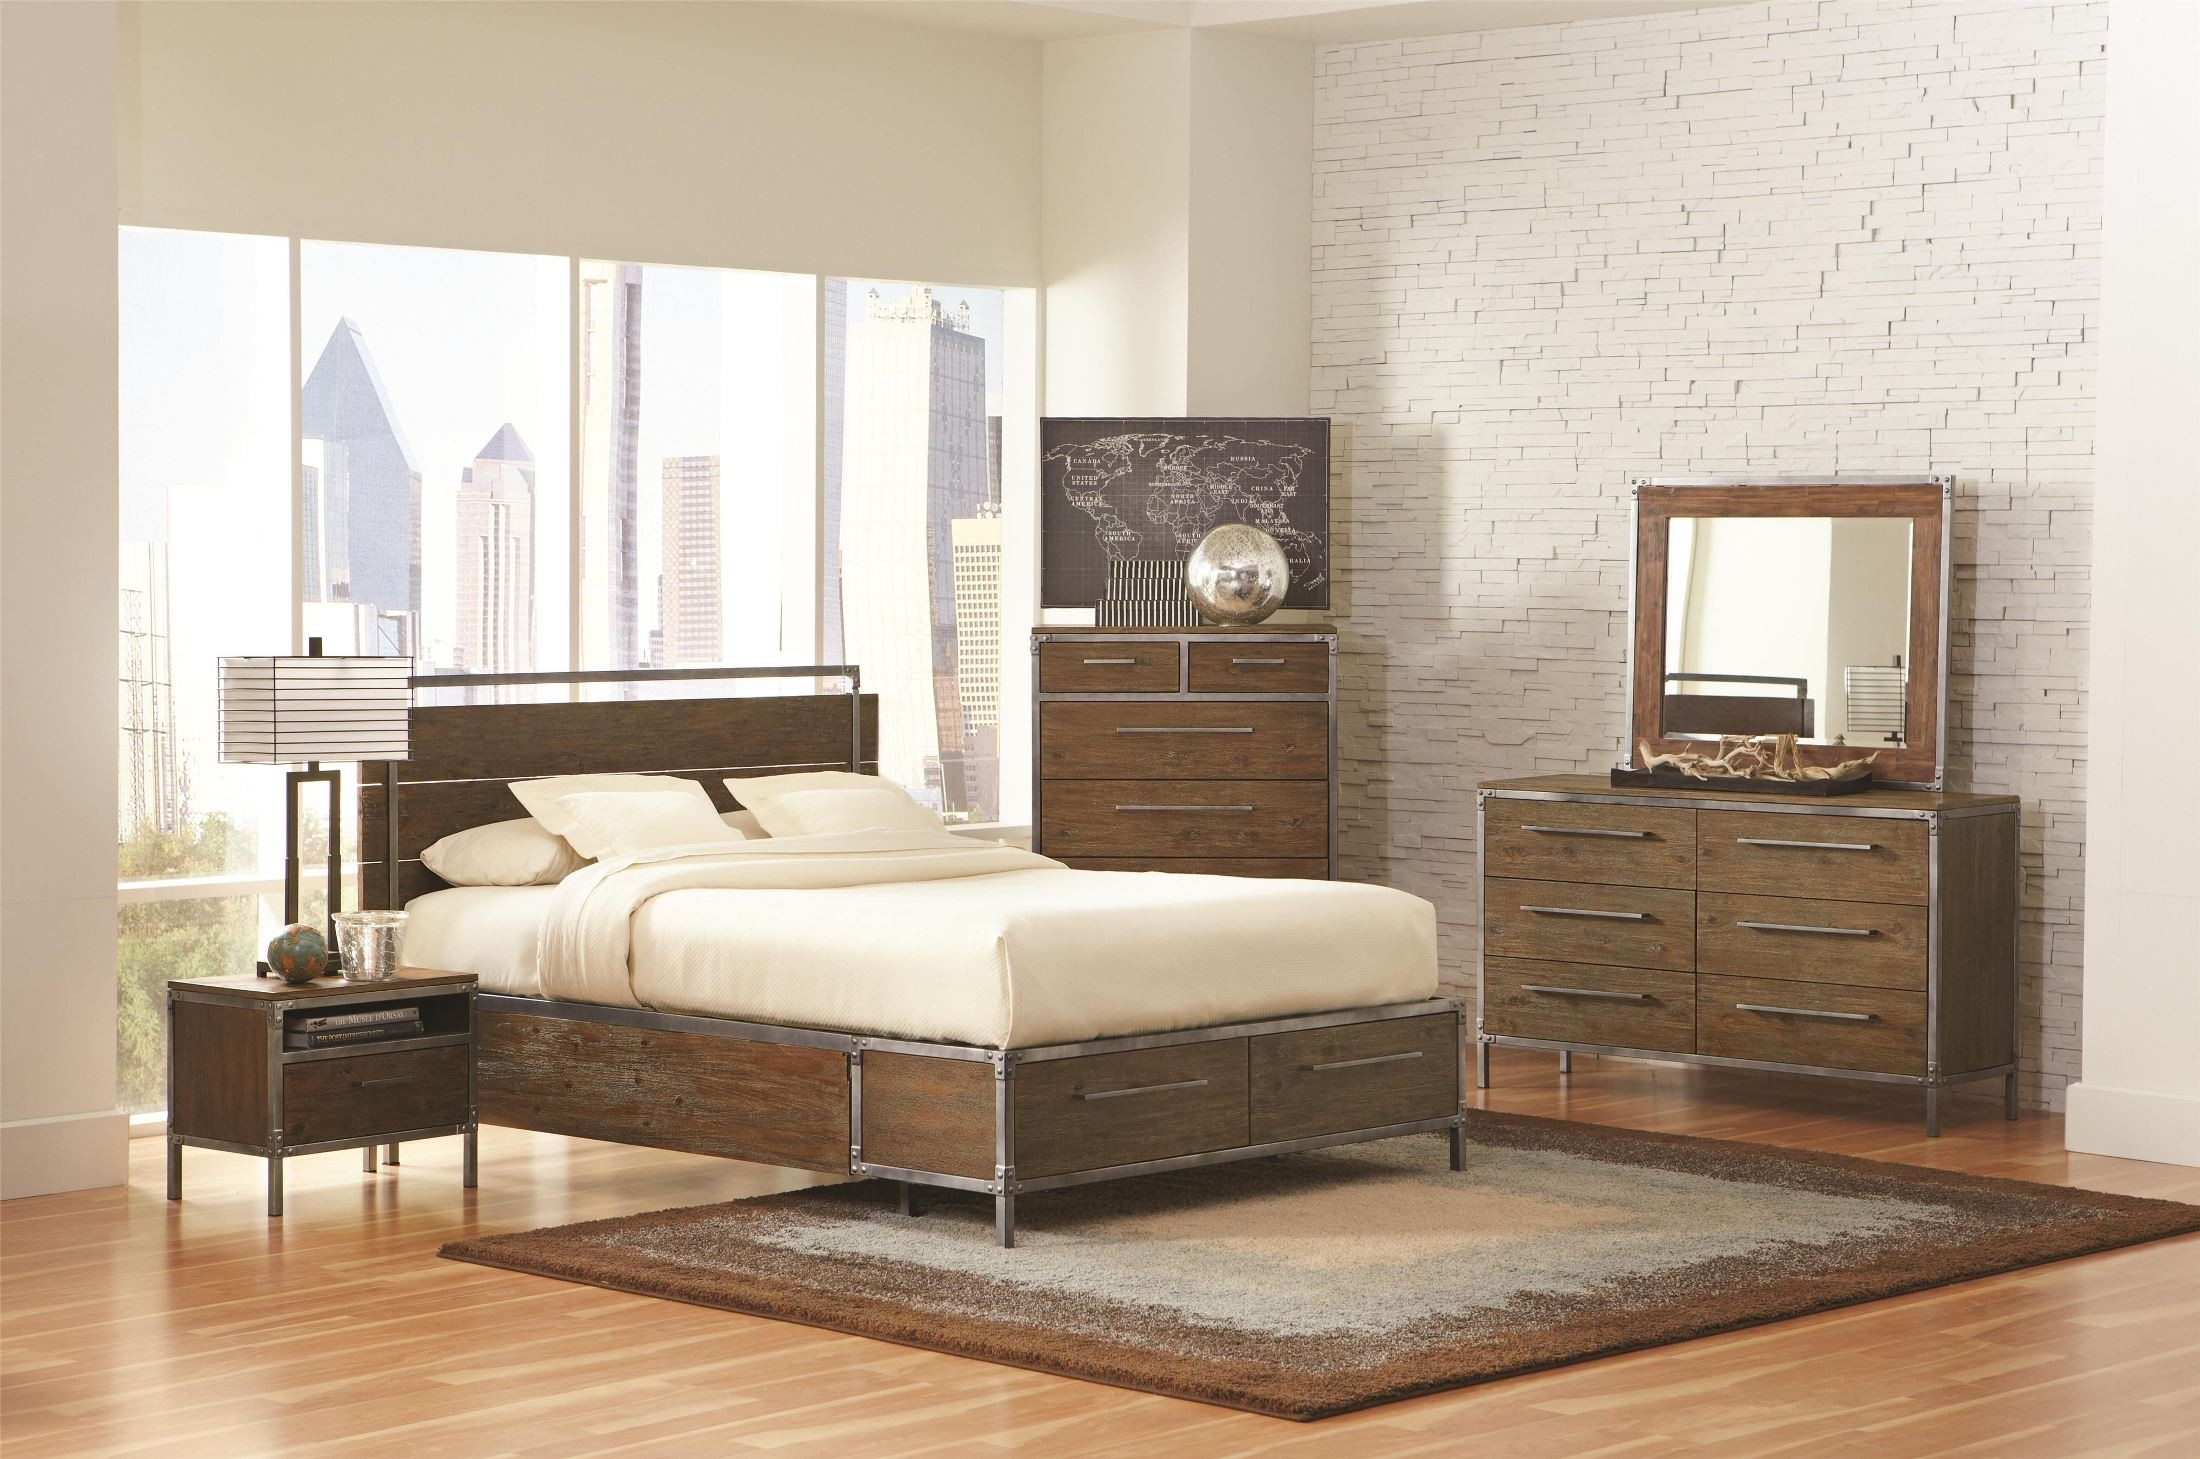 Arcadia weathered acacia platform storage bedroom set from coaster 203801q coleman furniture for Bedroom furniture washington dc